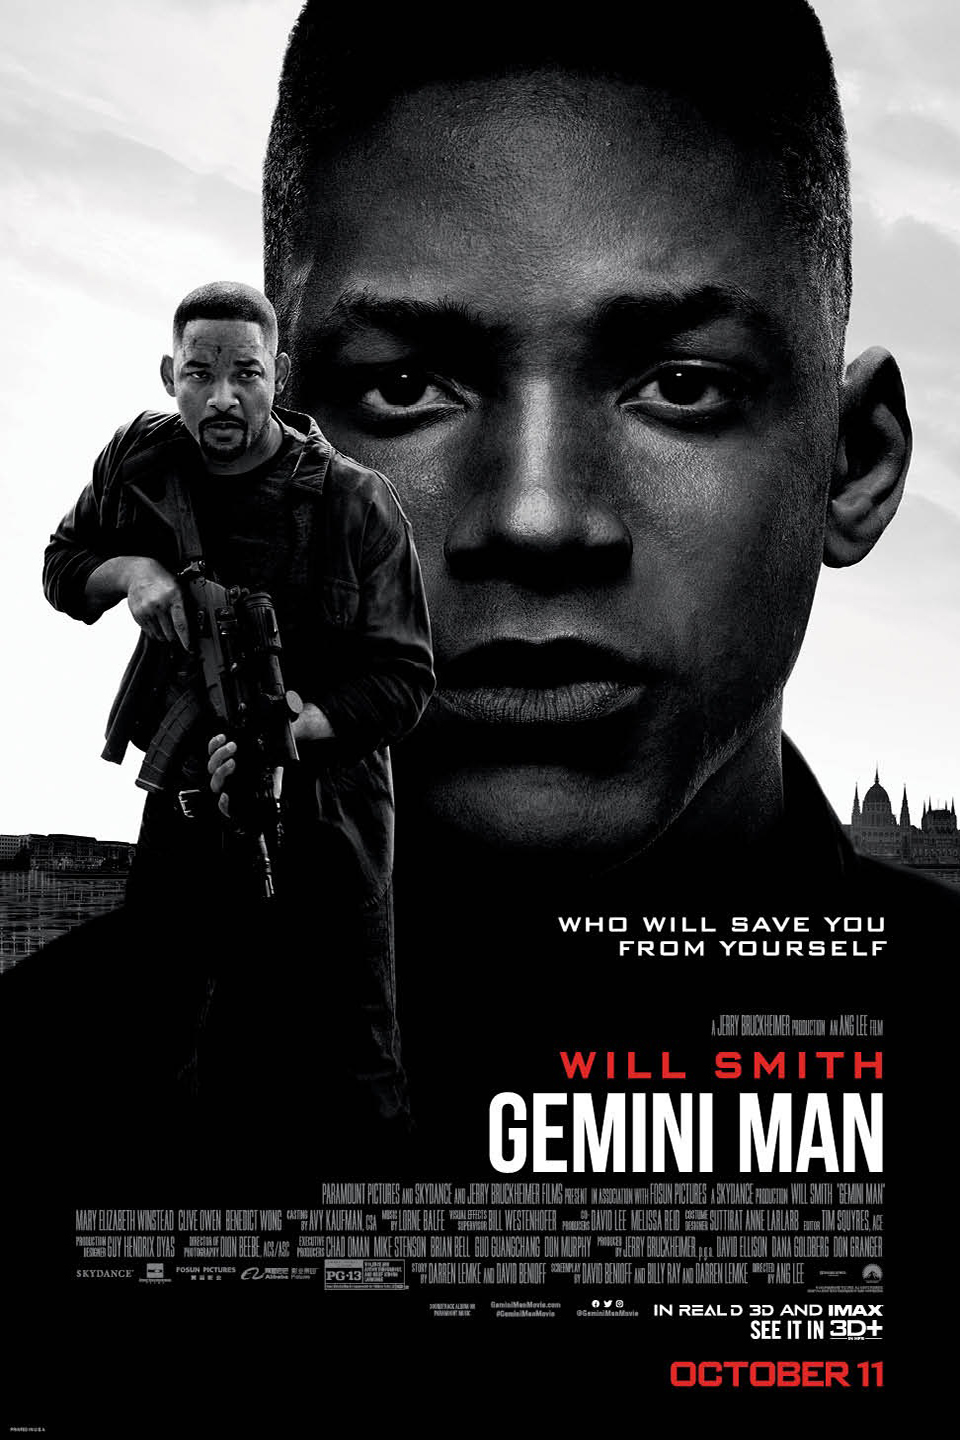 Still of Gemini Man